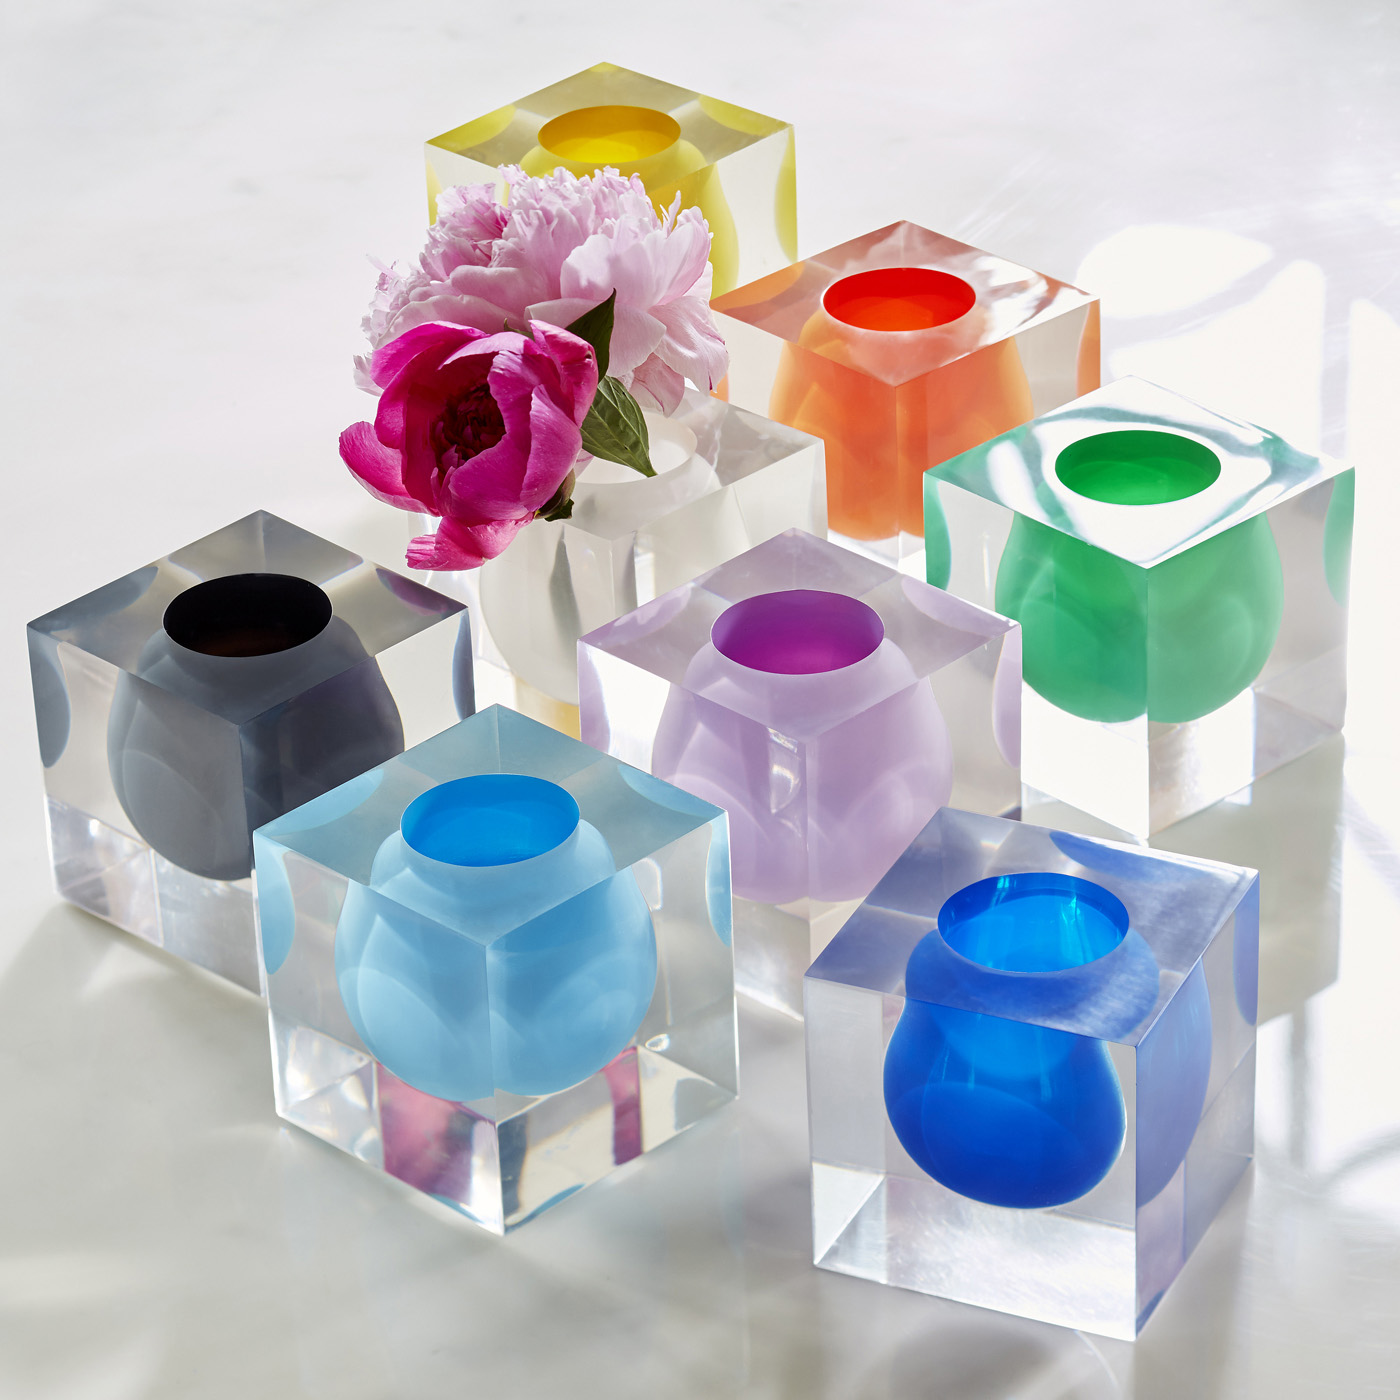 Colorful vases from Jonathan Adler